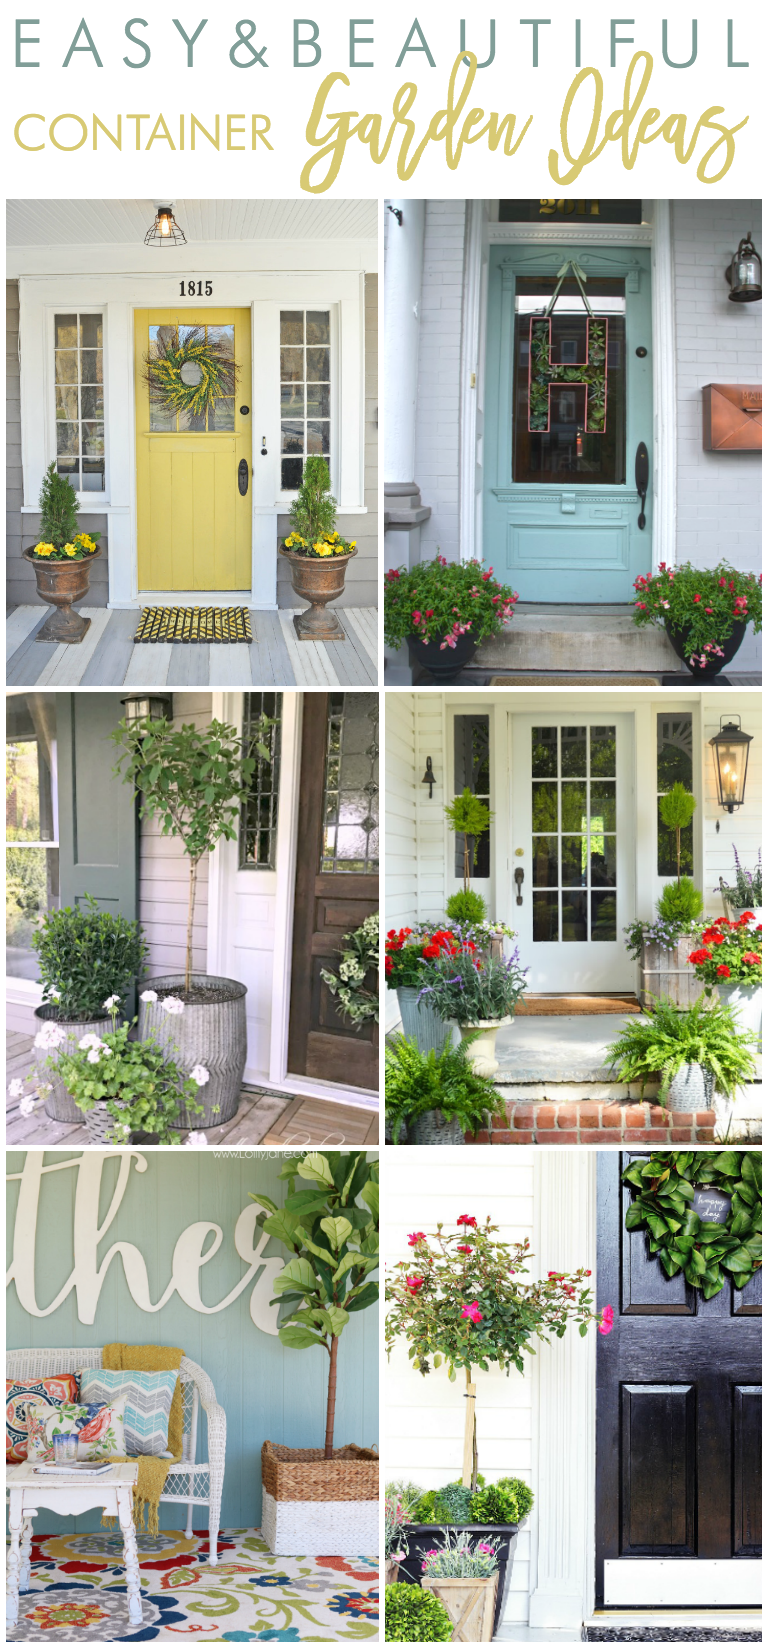 Easy and Beautiful Container Garden Ideas - Home Stories A to Z